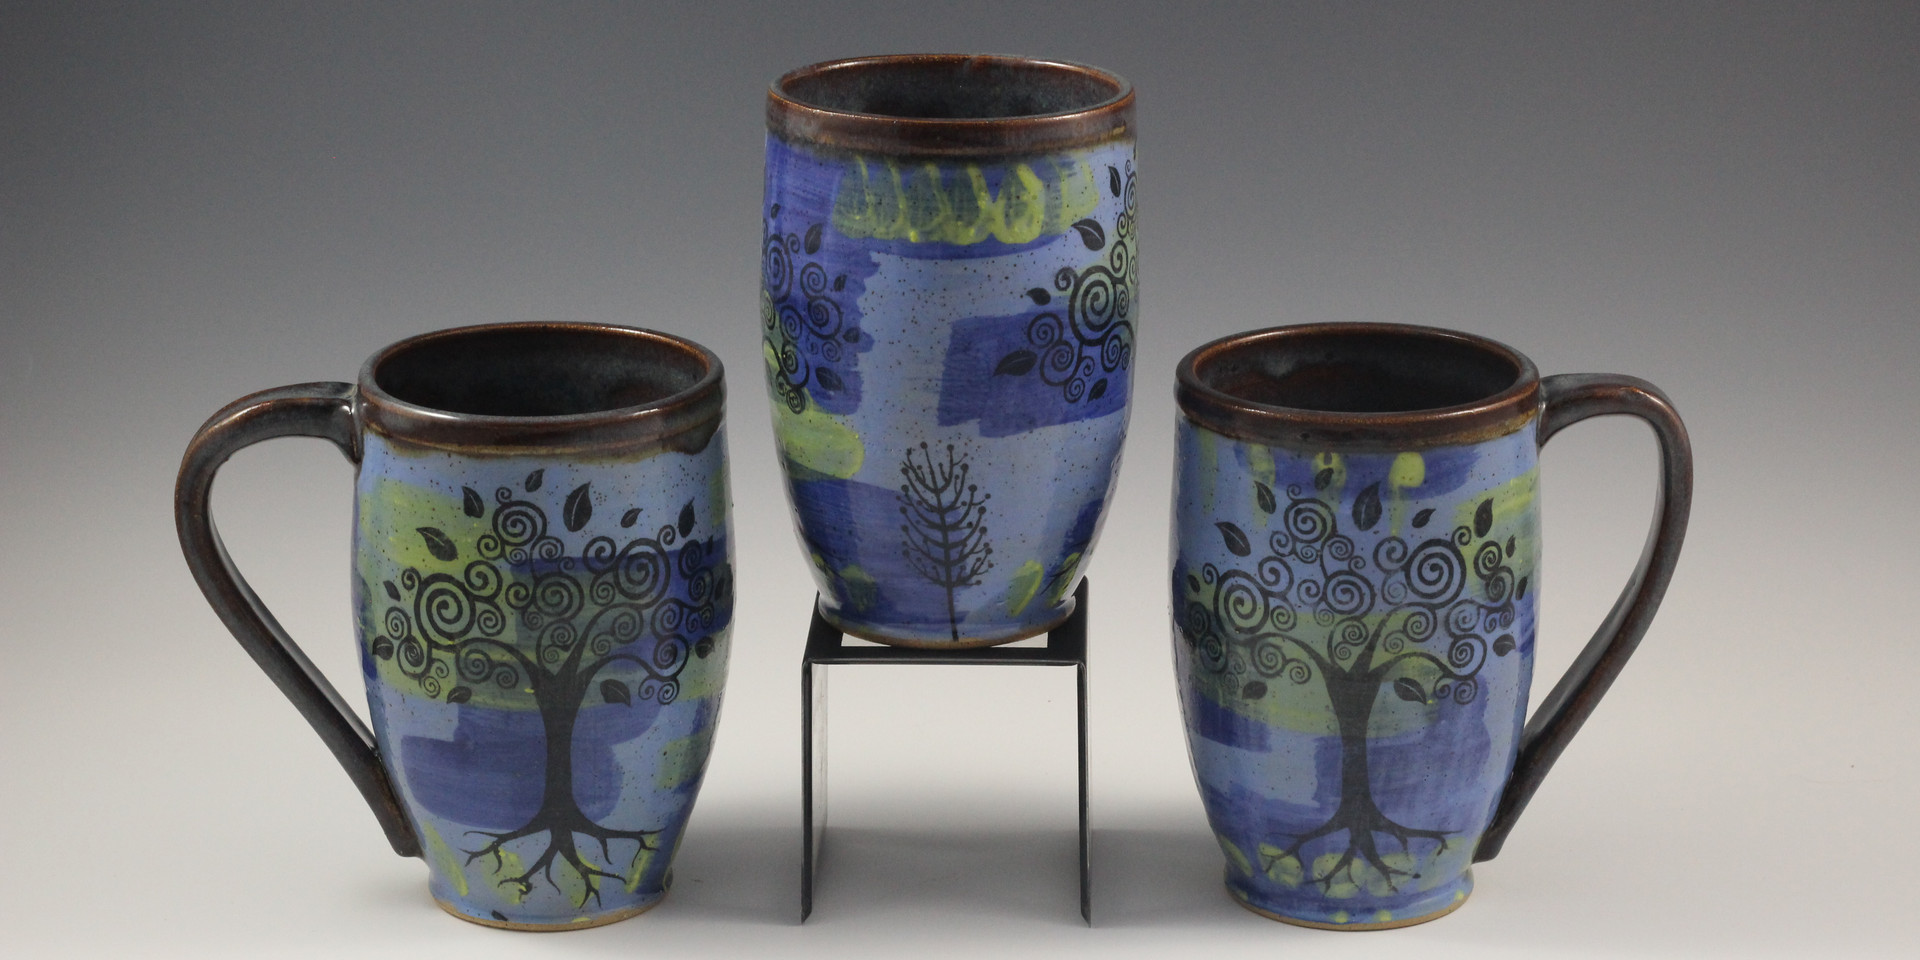 Whimsical Tree/Tree of Life Mugs